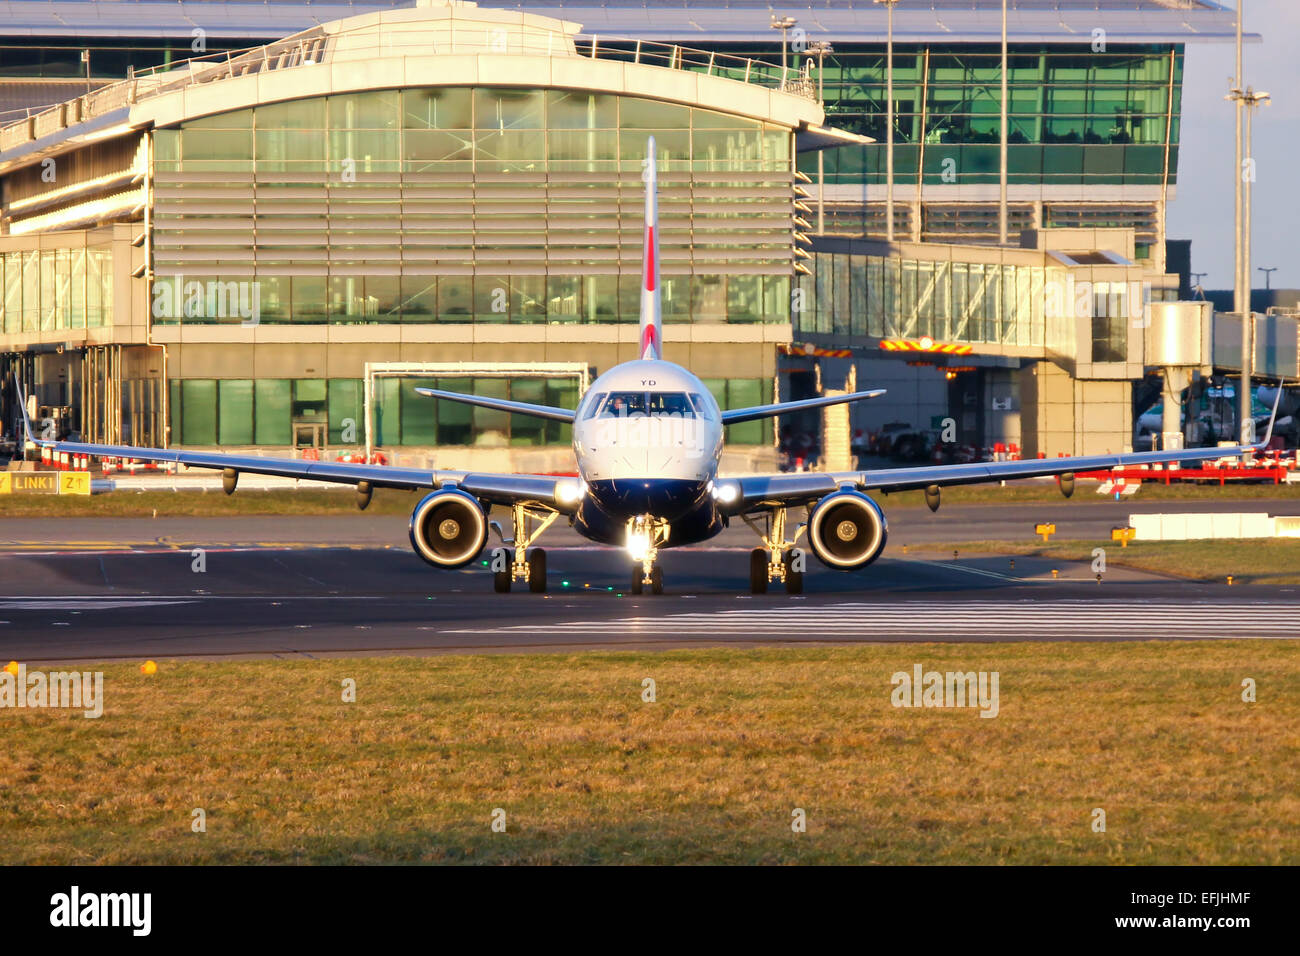 British Airways Embraer 170 lines up on runway 28 at Dublin airport. - Stock Image